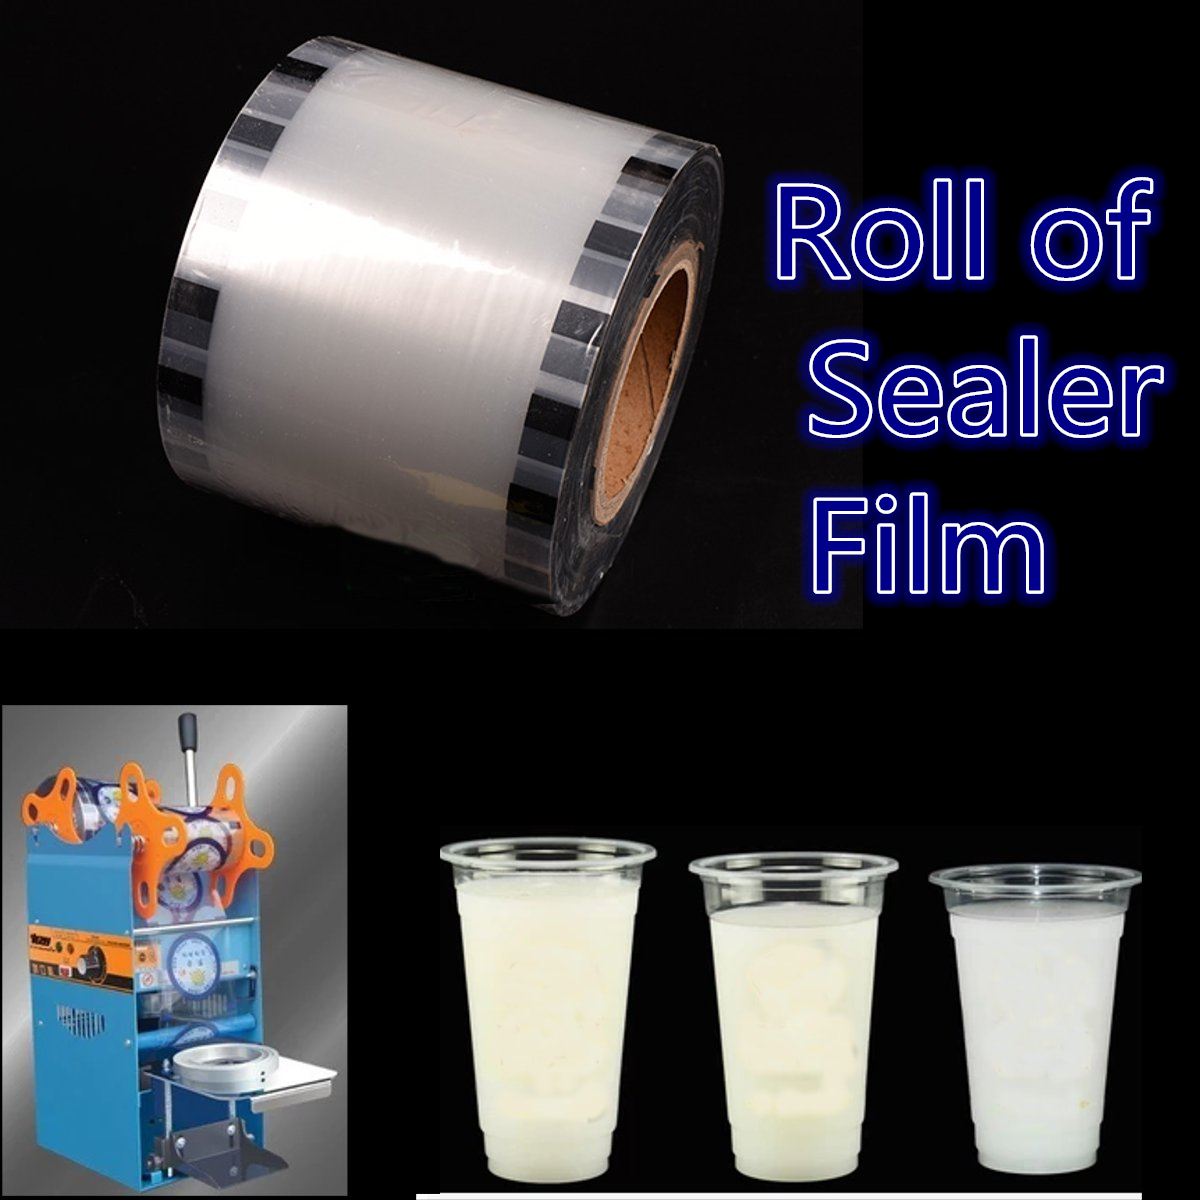 Clear Cup Seal Film Roll 3275 Cups 90-105mm for Cup Seal Ring Machine Bubble Milk Tea